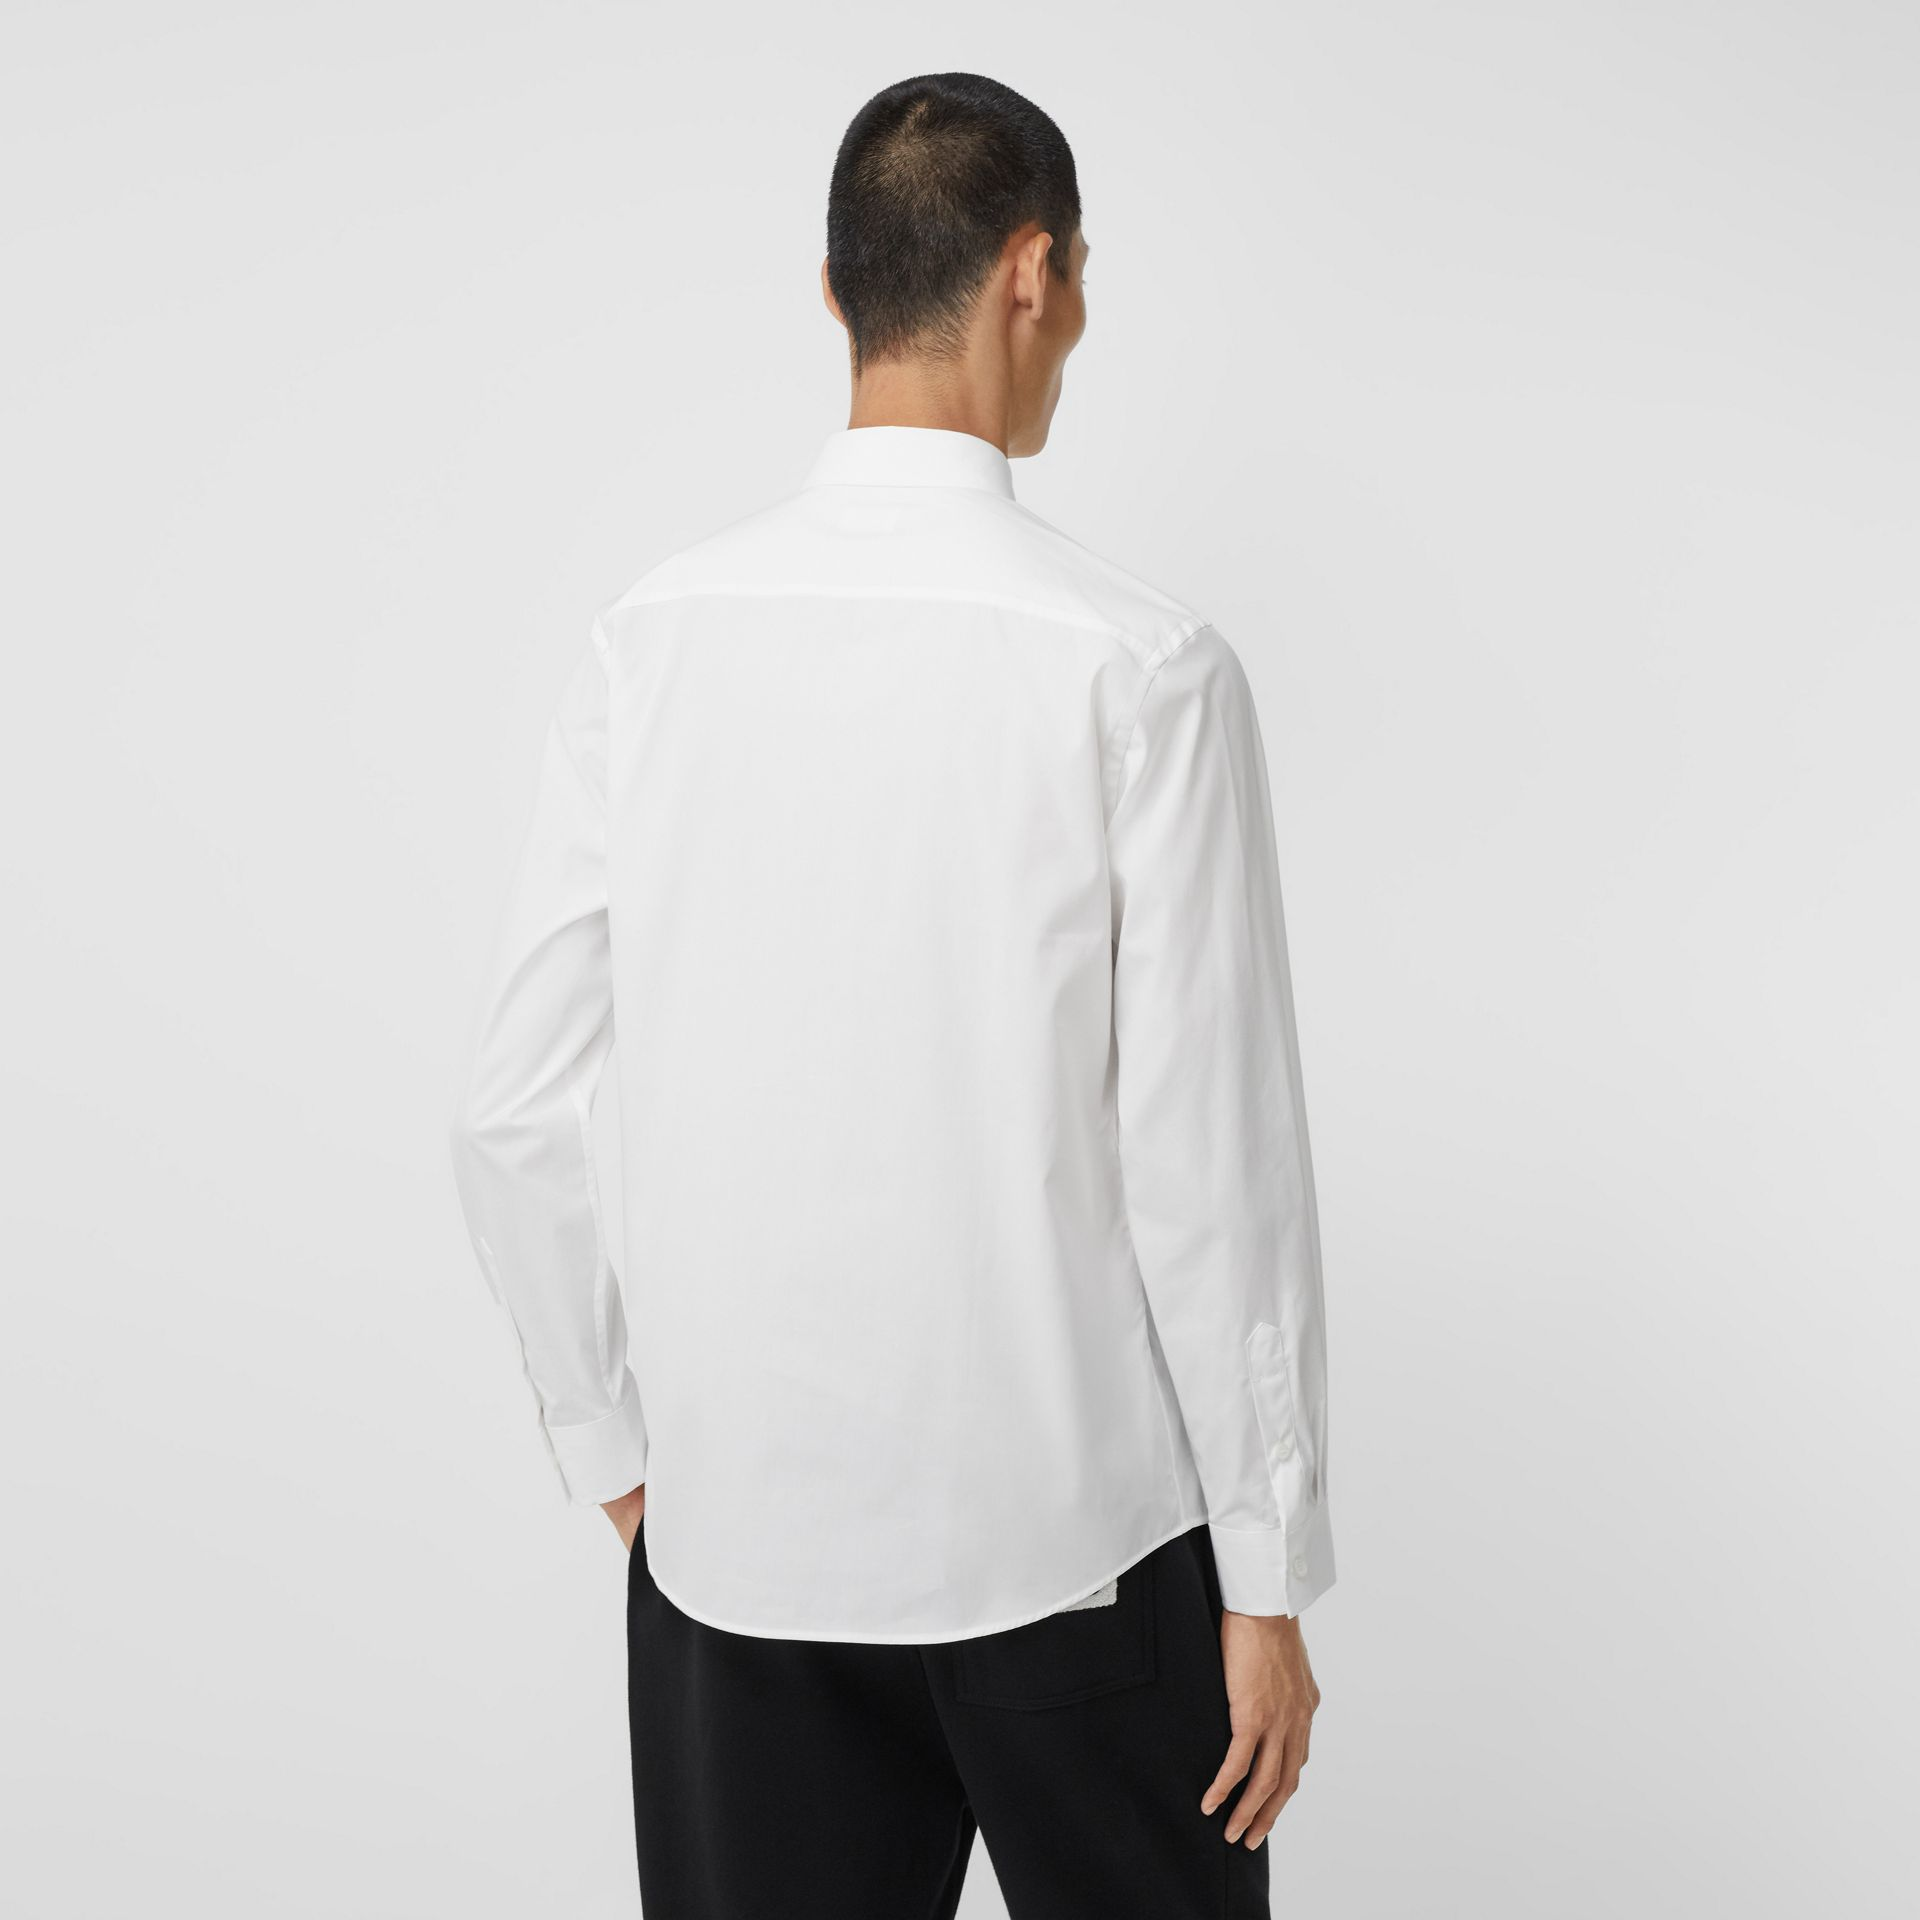 Logo Detail Stretch Cotton Poplin Shirt in White - Men | Burberry - gallery image 2